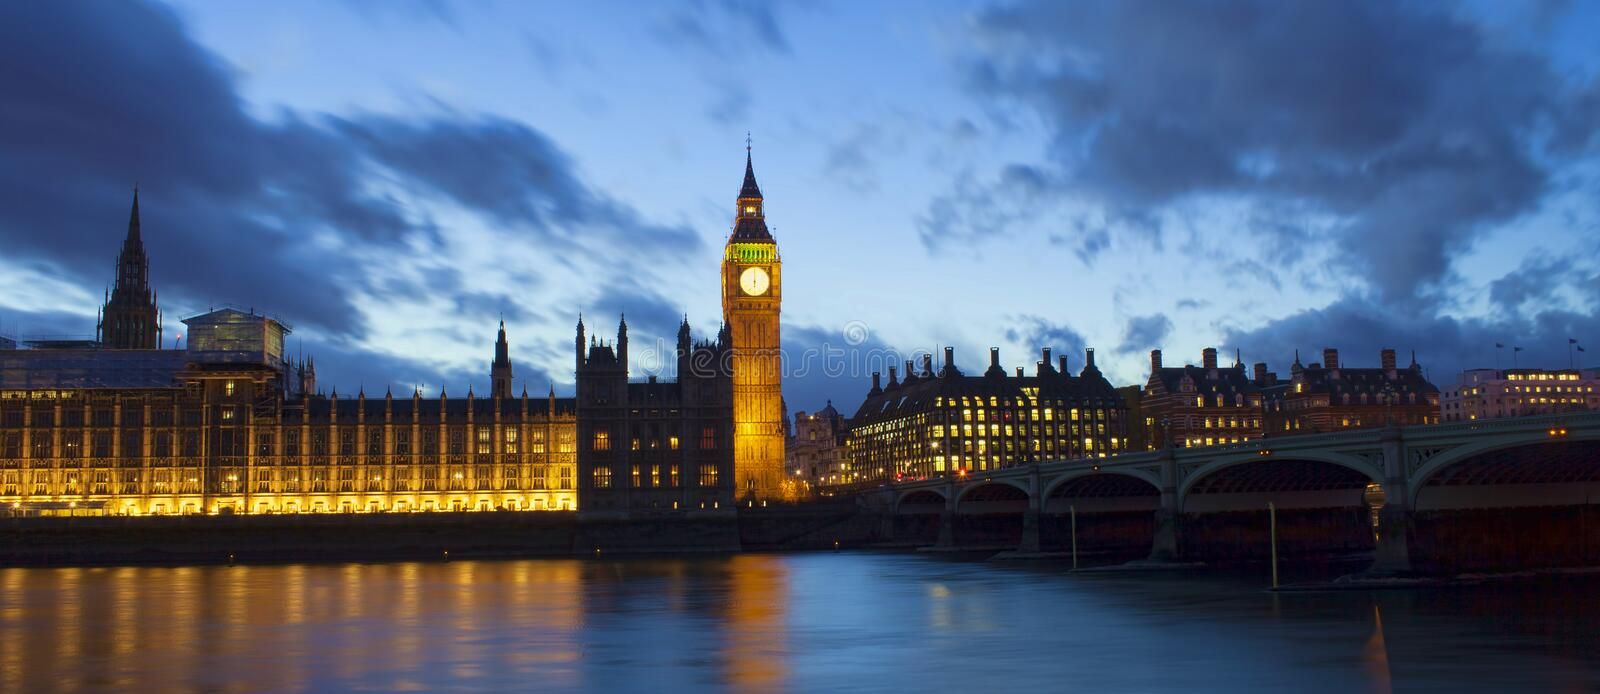 Big Ben and Westminster palace in London. At night. abstract colorful image stock photography